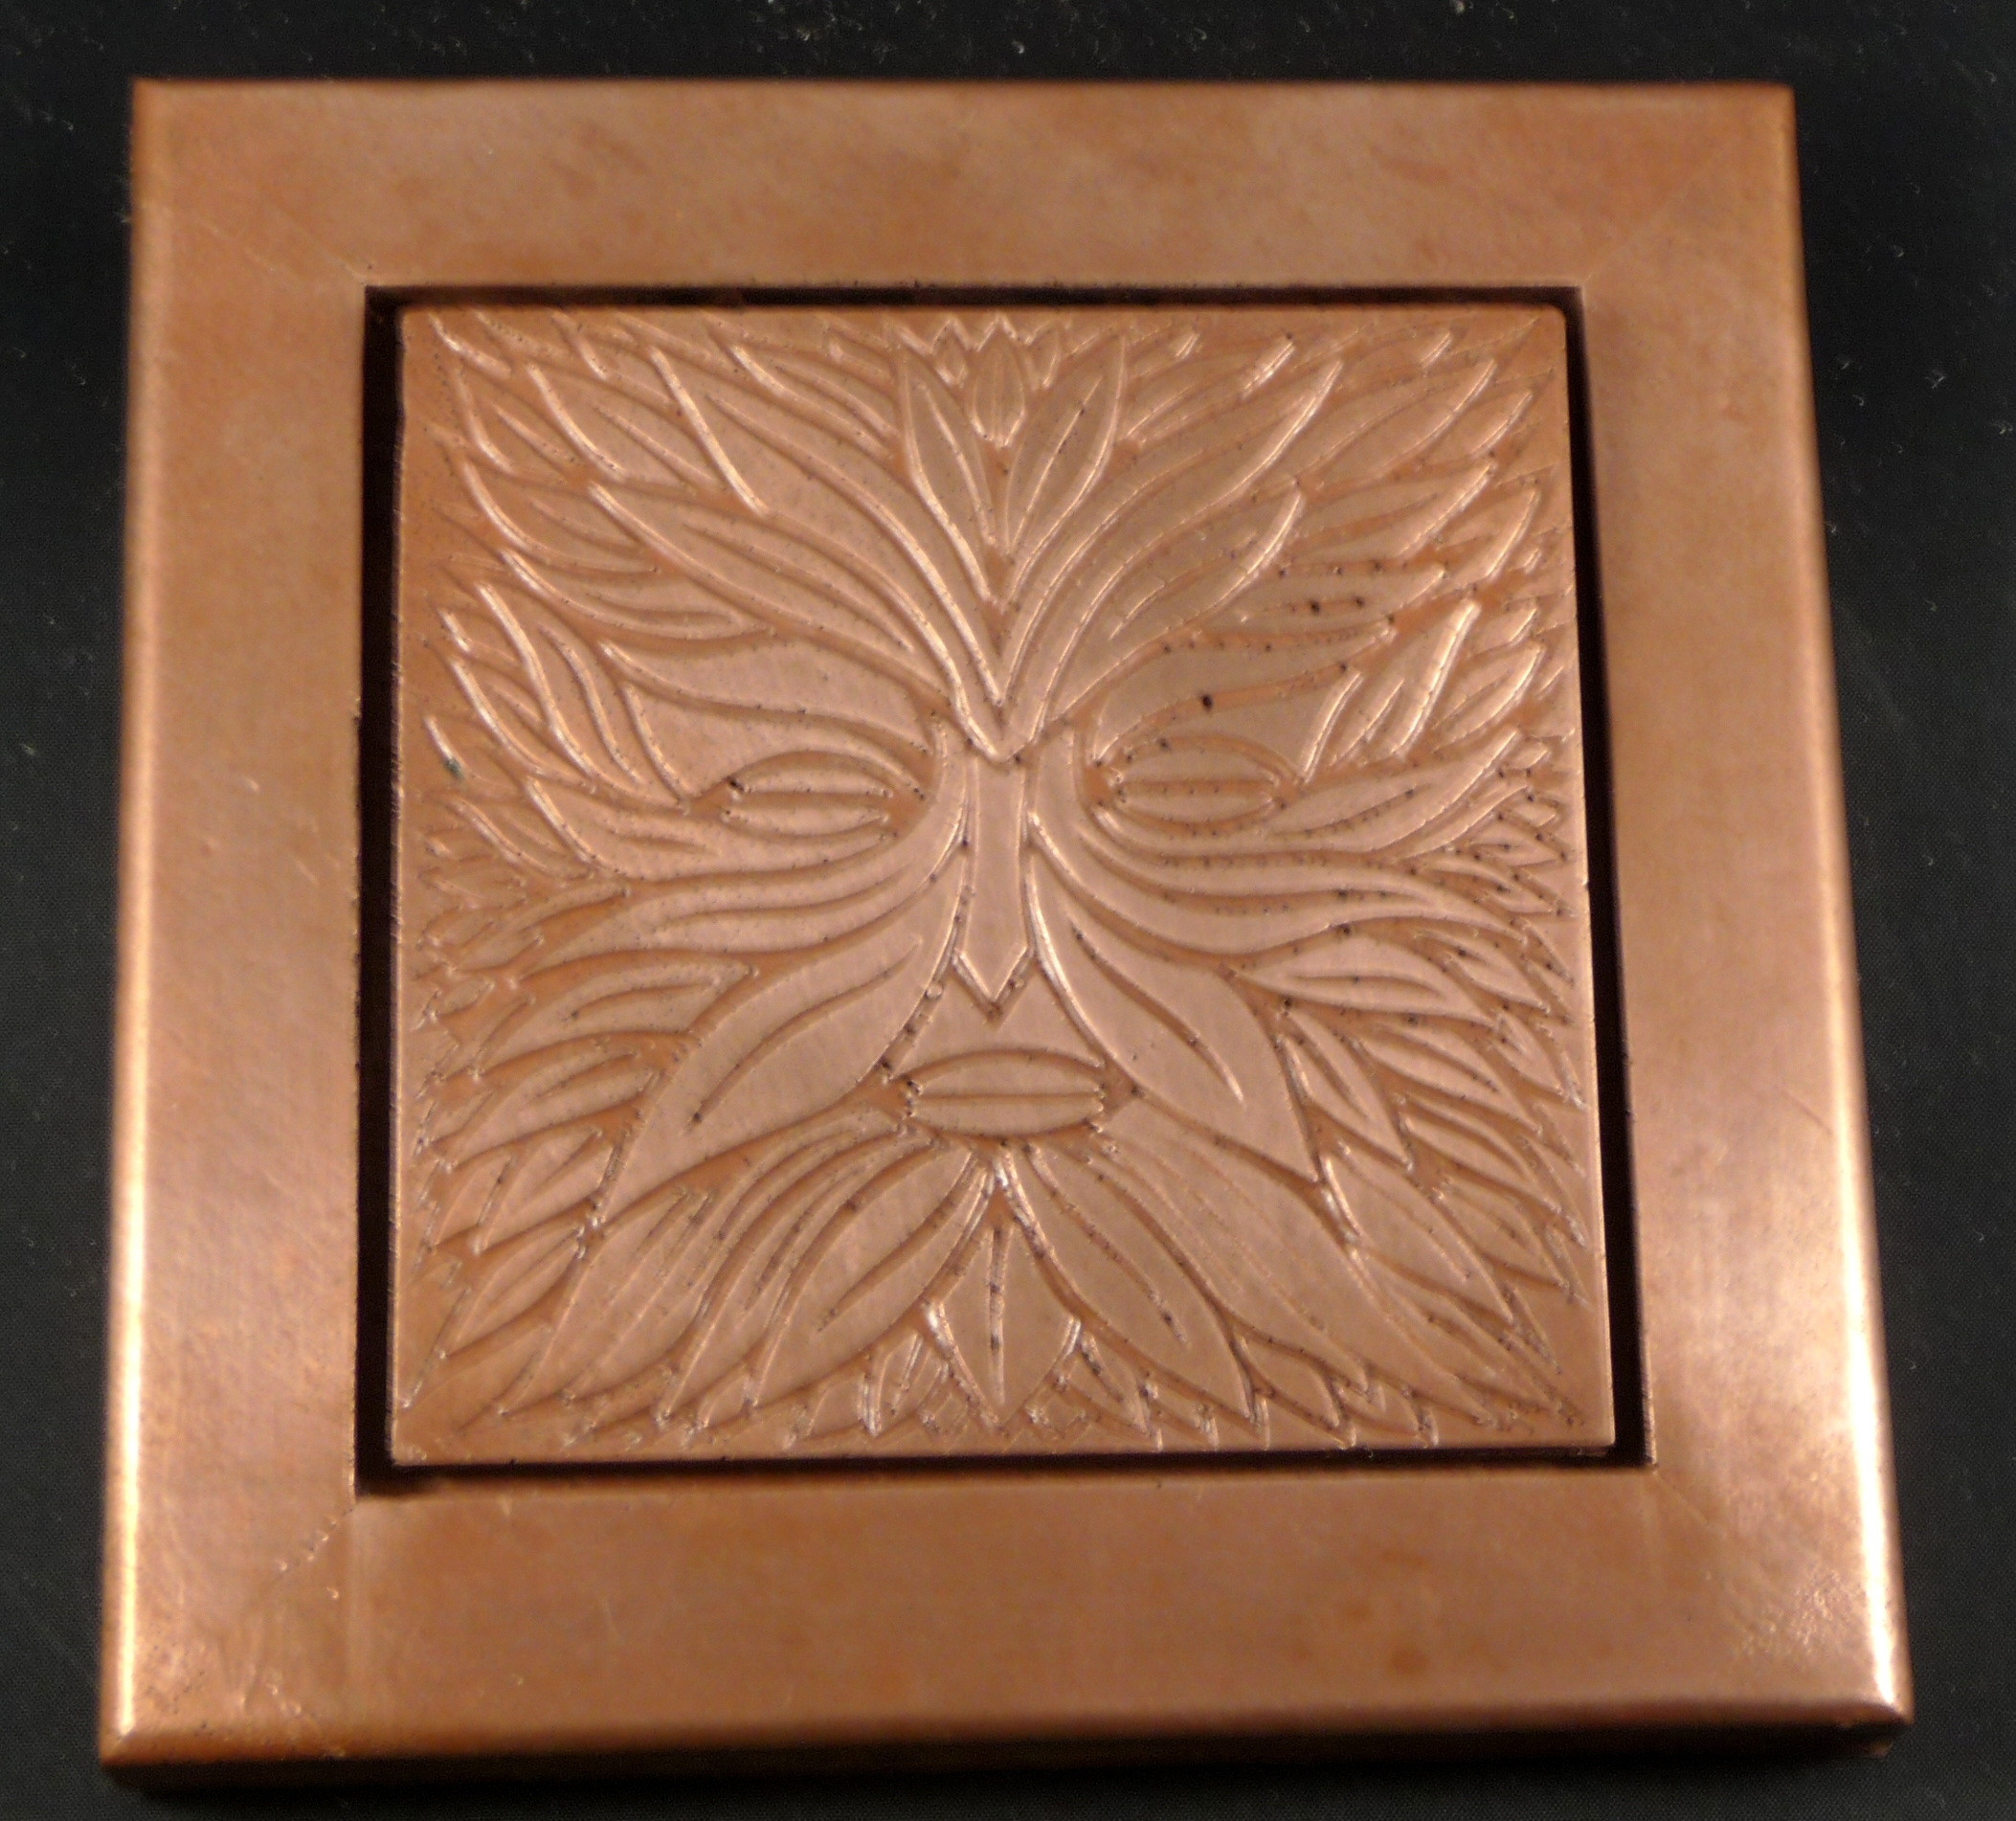 Copper Tile Wall Decor | Pacifica Tile Art Studio Pertaining To Most Up To Date Copper Wall Art (View 11 of 15)